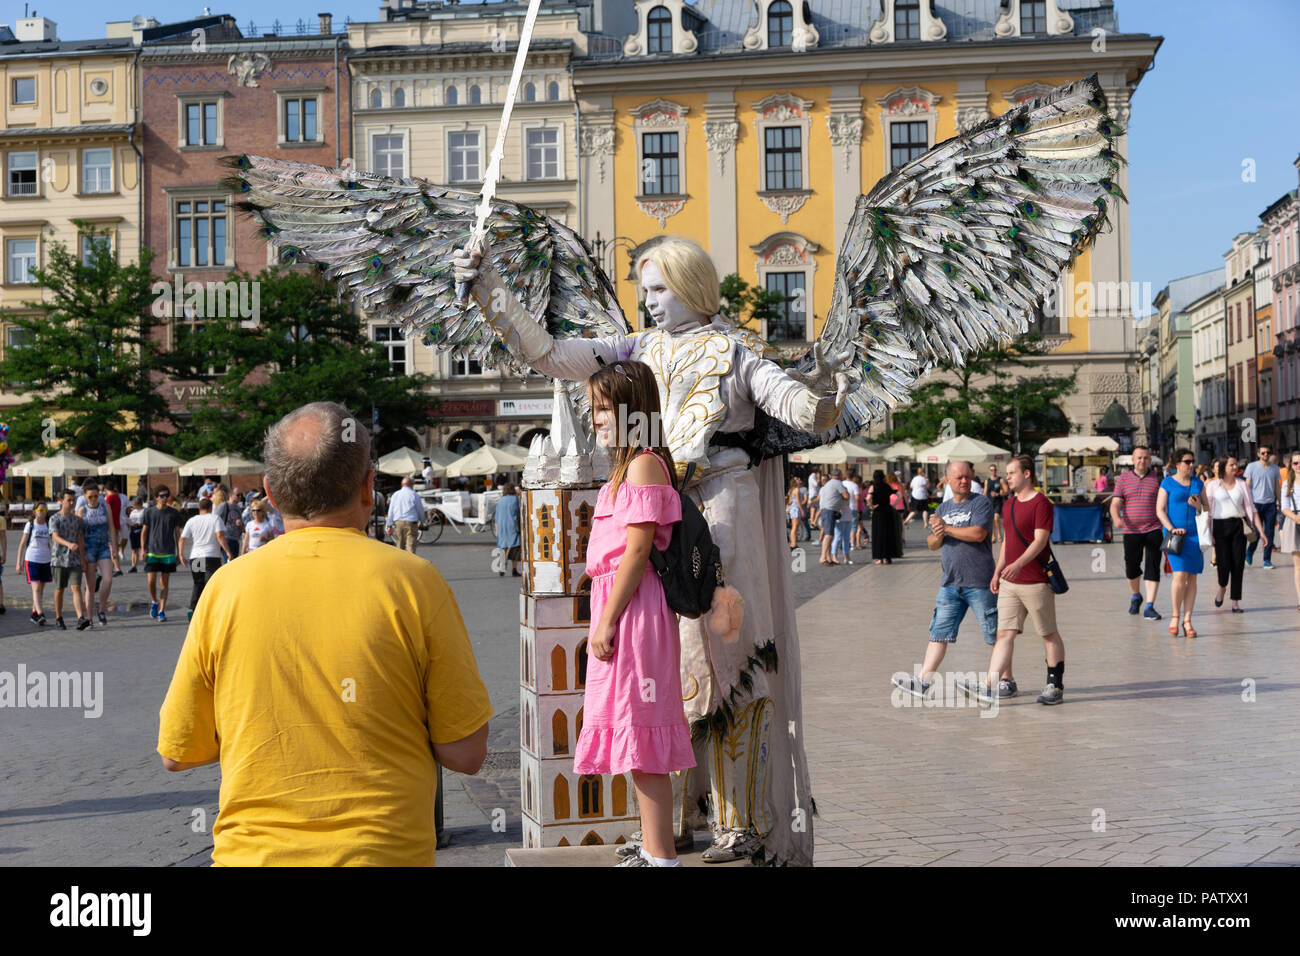 Street Entertainers, Krakow, Poland, Europe. - Stock Image